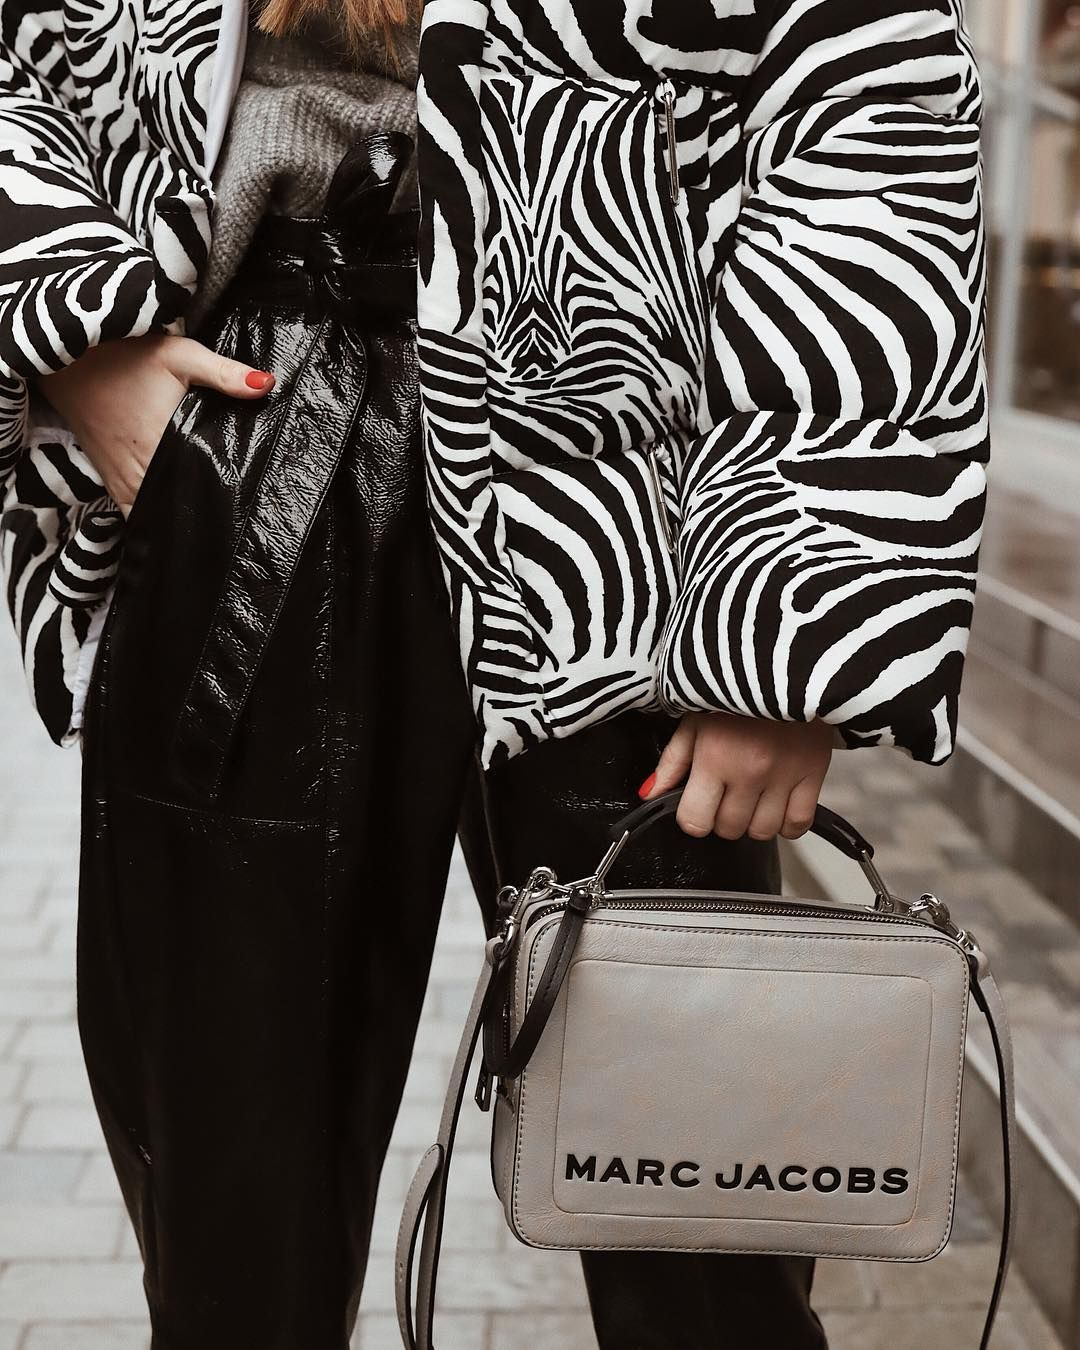 b6a2bb1b1a1a Alina Frendiy spotted with our Marc Jacobs Box Bag in Griffin | In ...